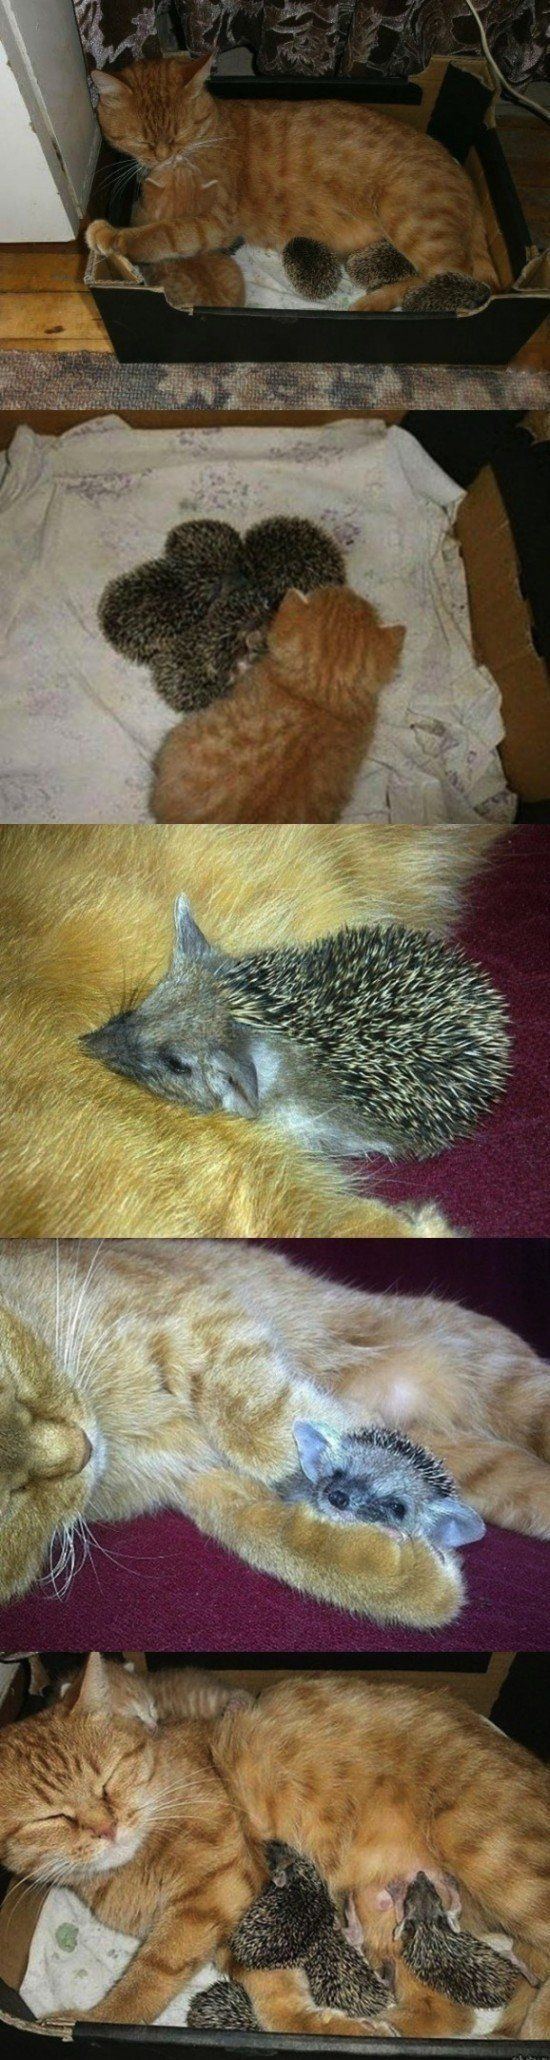 Cat adopted four orphan baby hedgehogs after their mother died and raises them alongside her own kitten.: